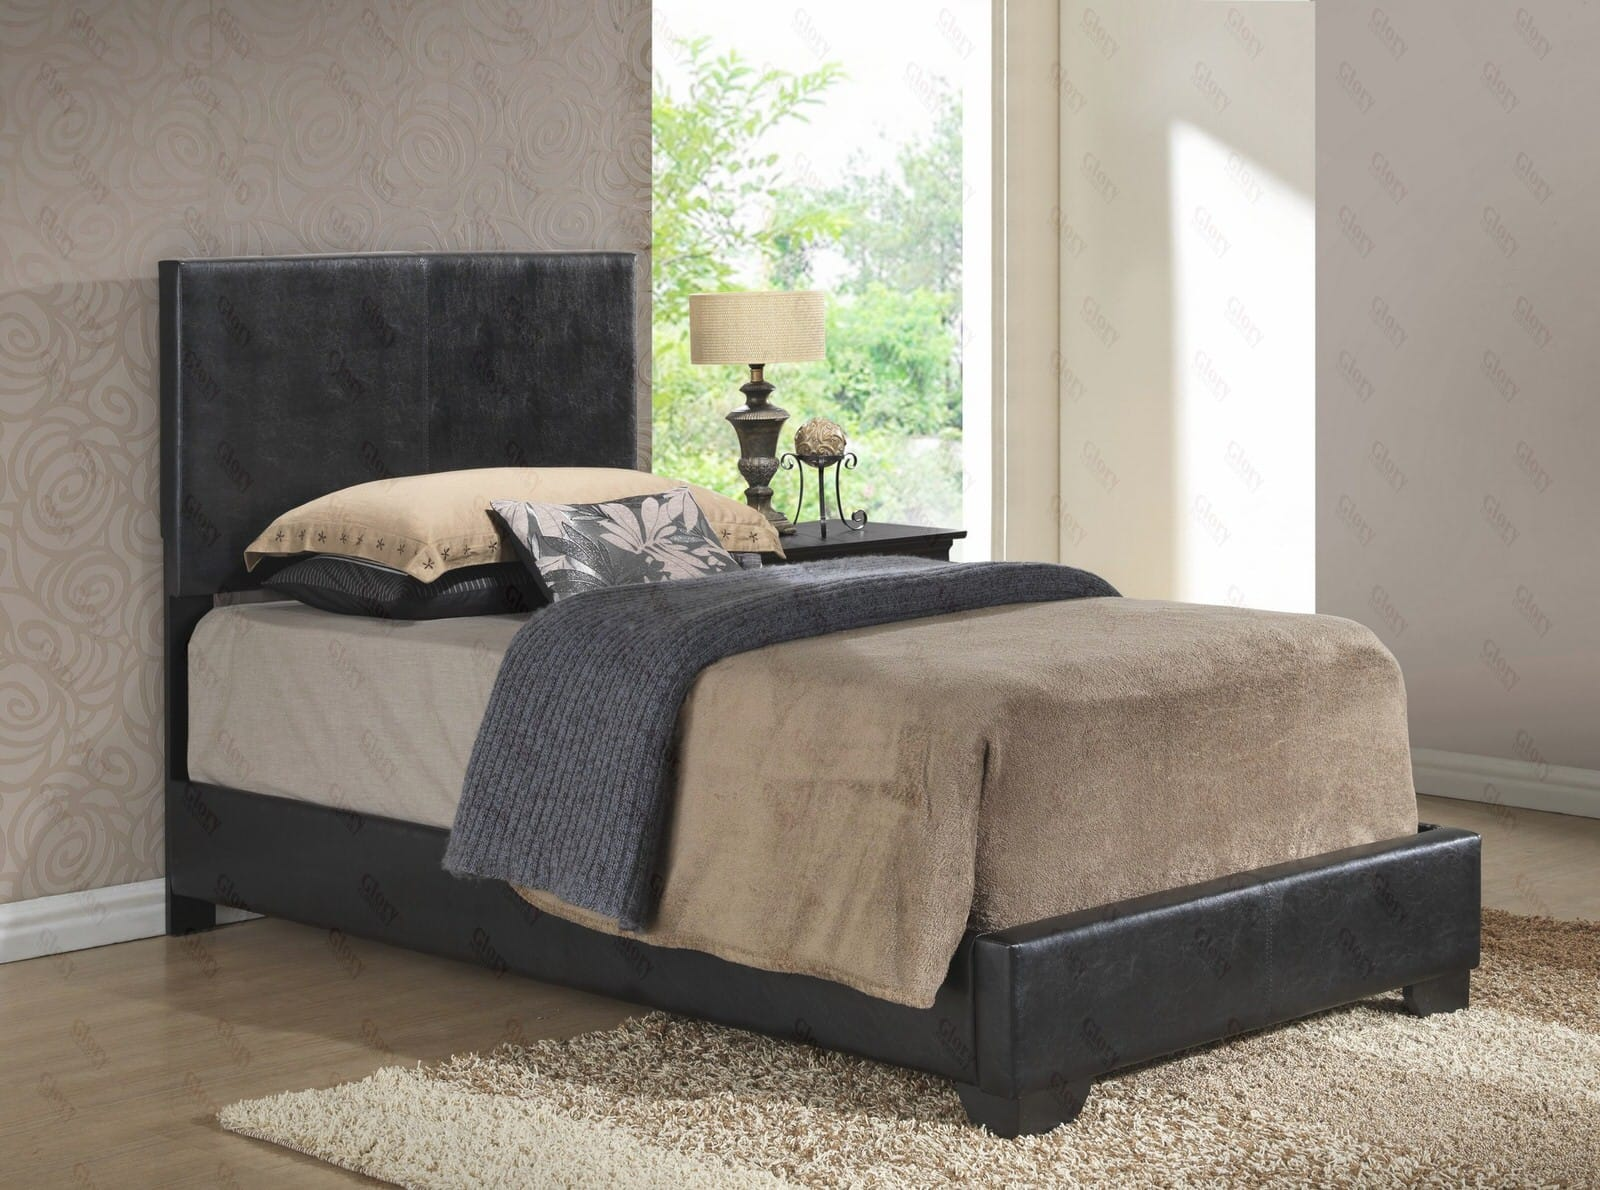 Twin Upholstered Bed with Mattress Set   Free Delivery in NYC  Glory  Furniture. Twin Upholstered Bed with Mattress Set   Free Delivery in NYC